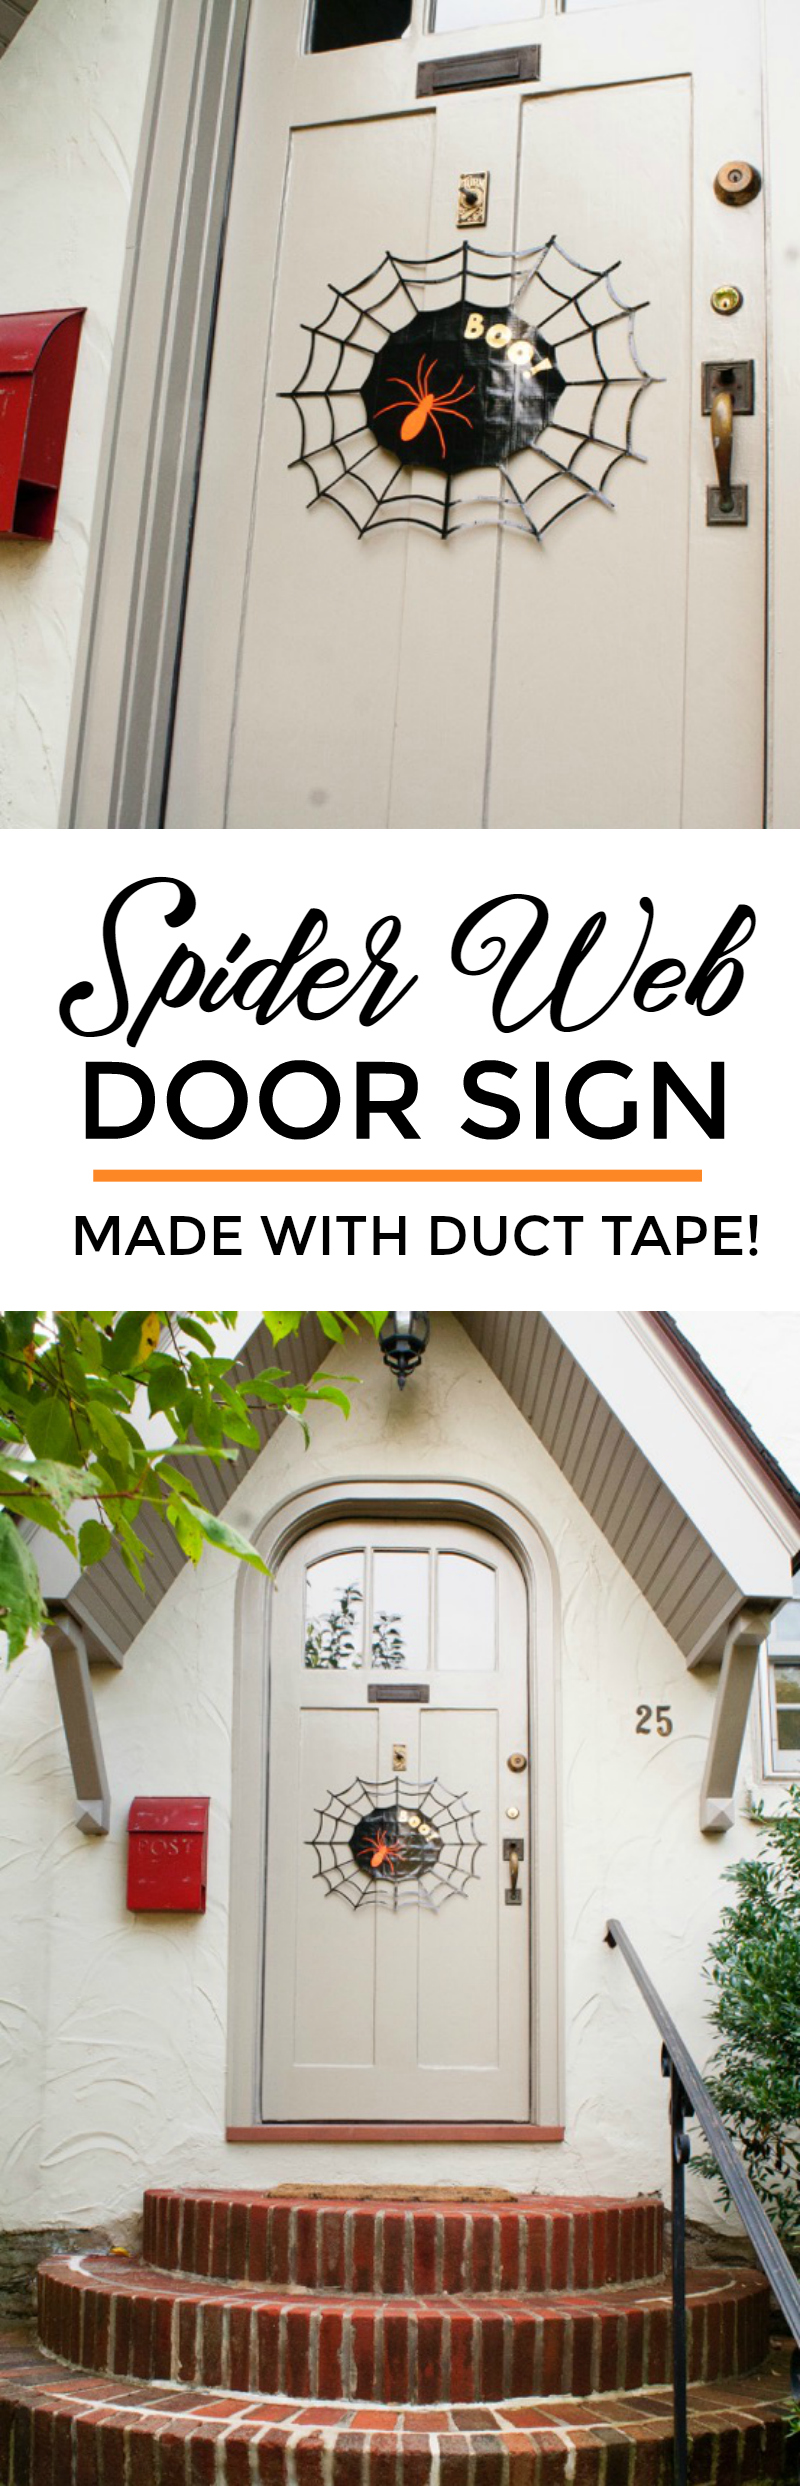 spider-web-door-sign